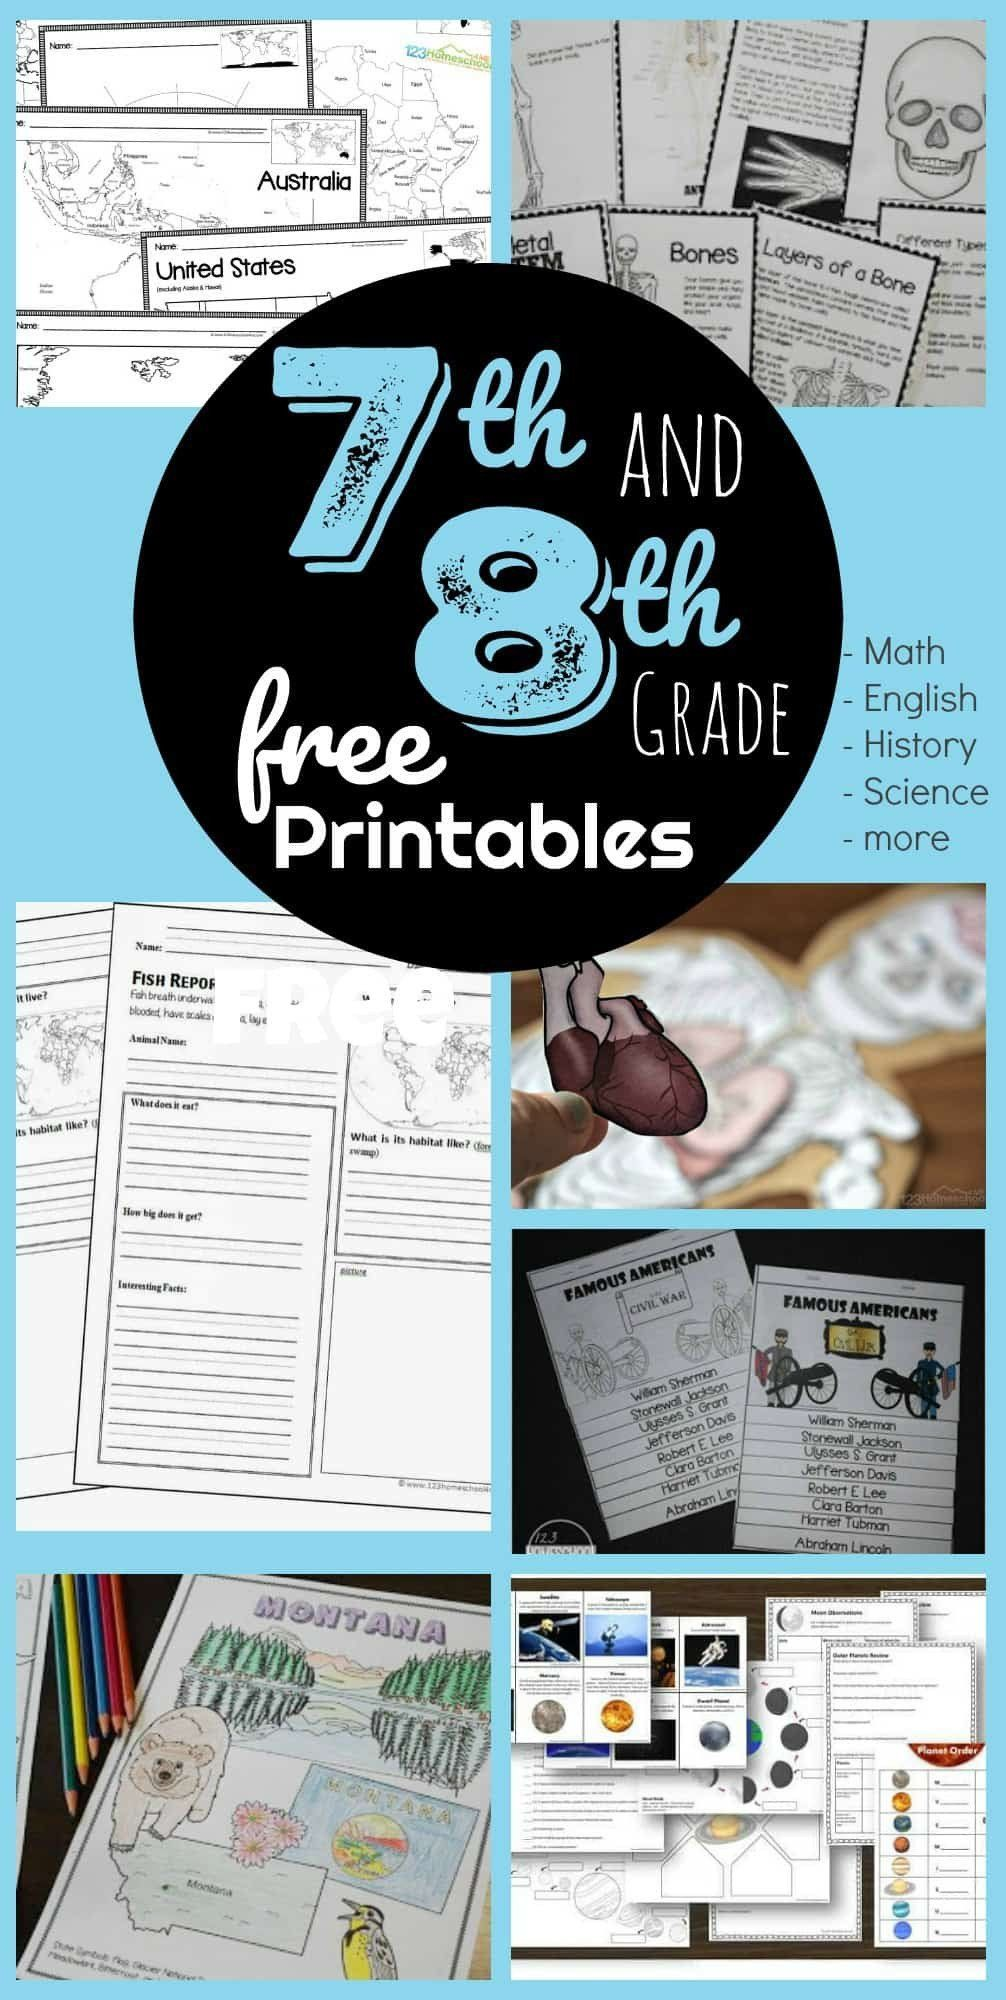 Free Grammar Worksheets Middle School Free 7th 8th Grade Worksheets In 2020 Geography Worksheets 7th Grade Science Homeschool Middle School